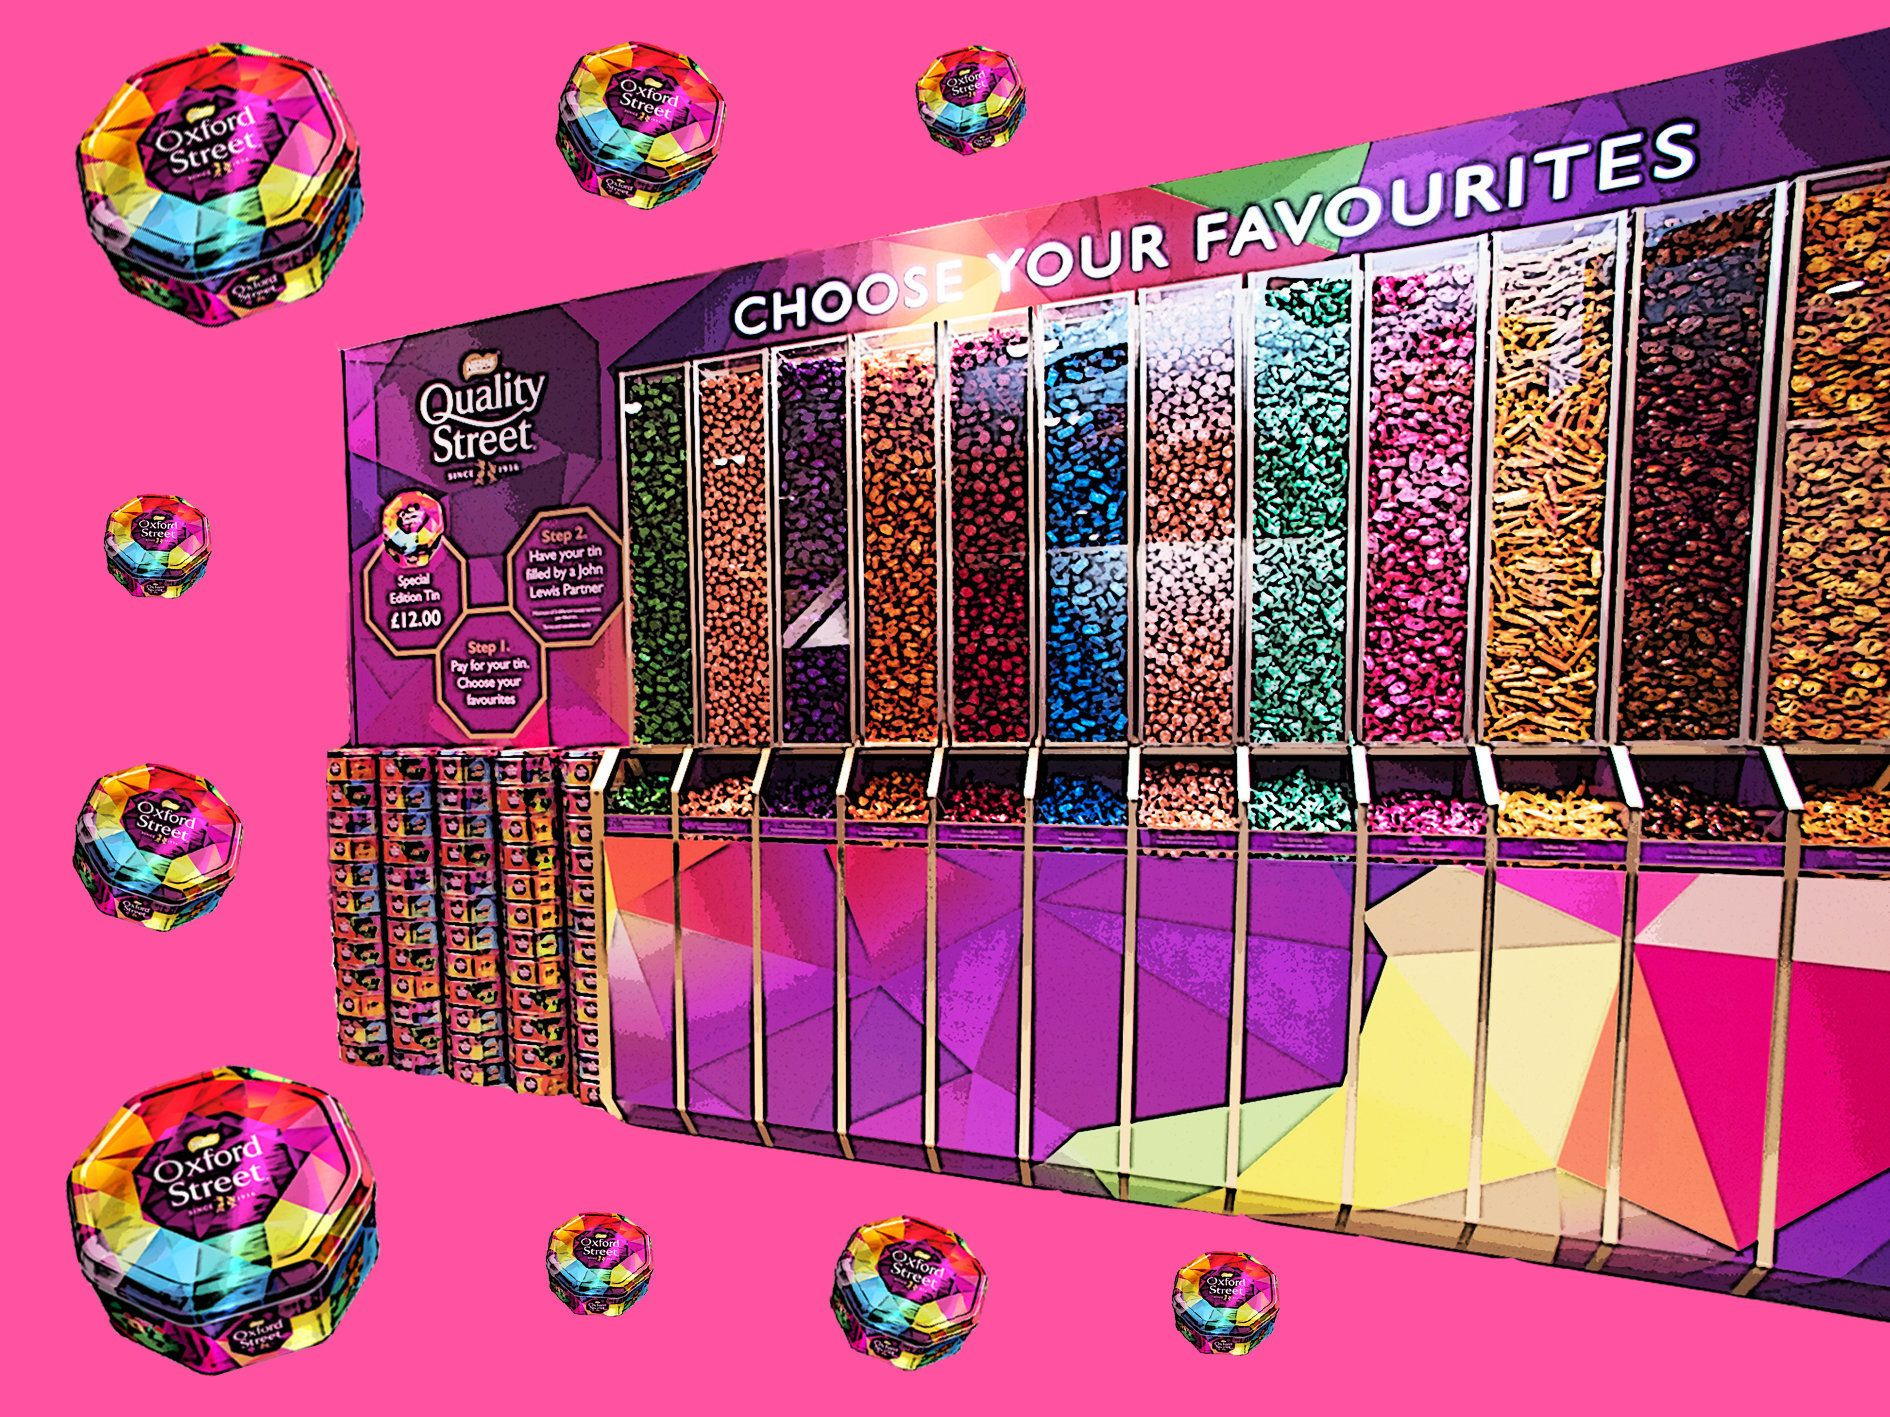 CUSTOMISE: Pick 'N' Mix Your Own Quality Street Tin At John Lewis This